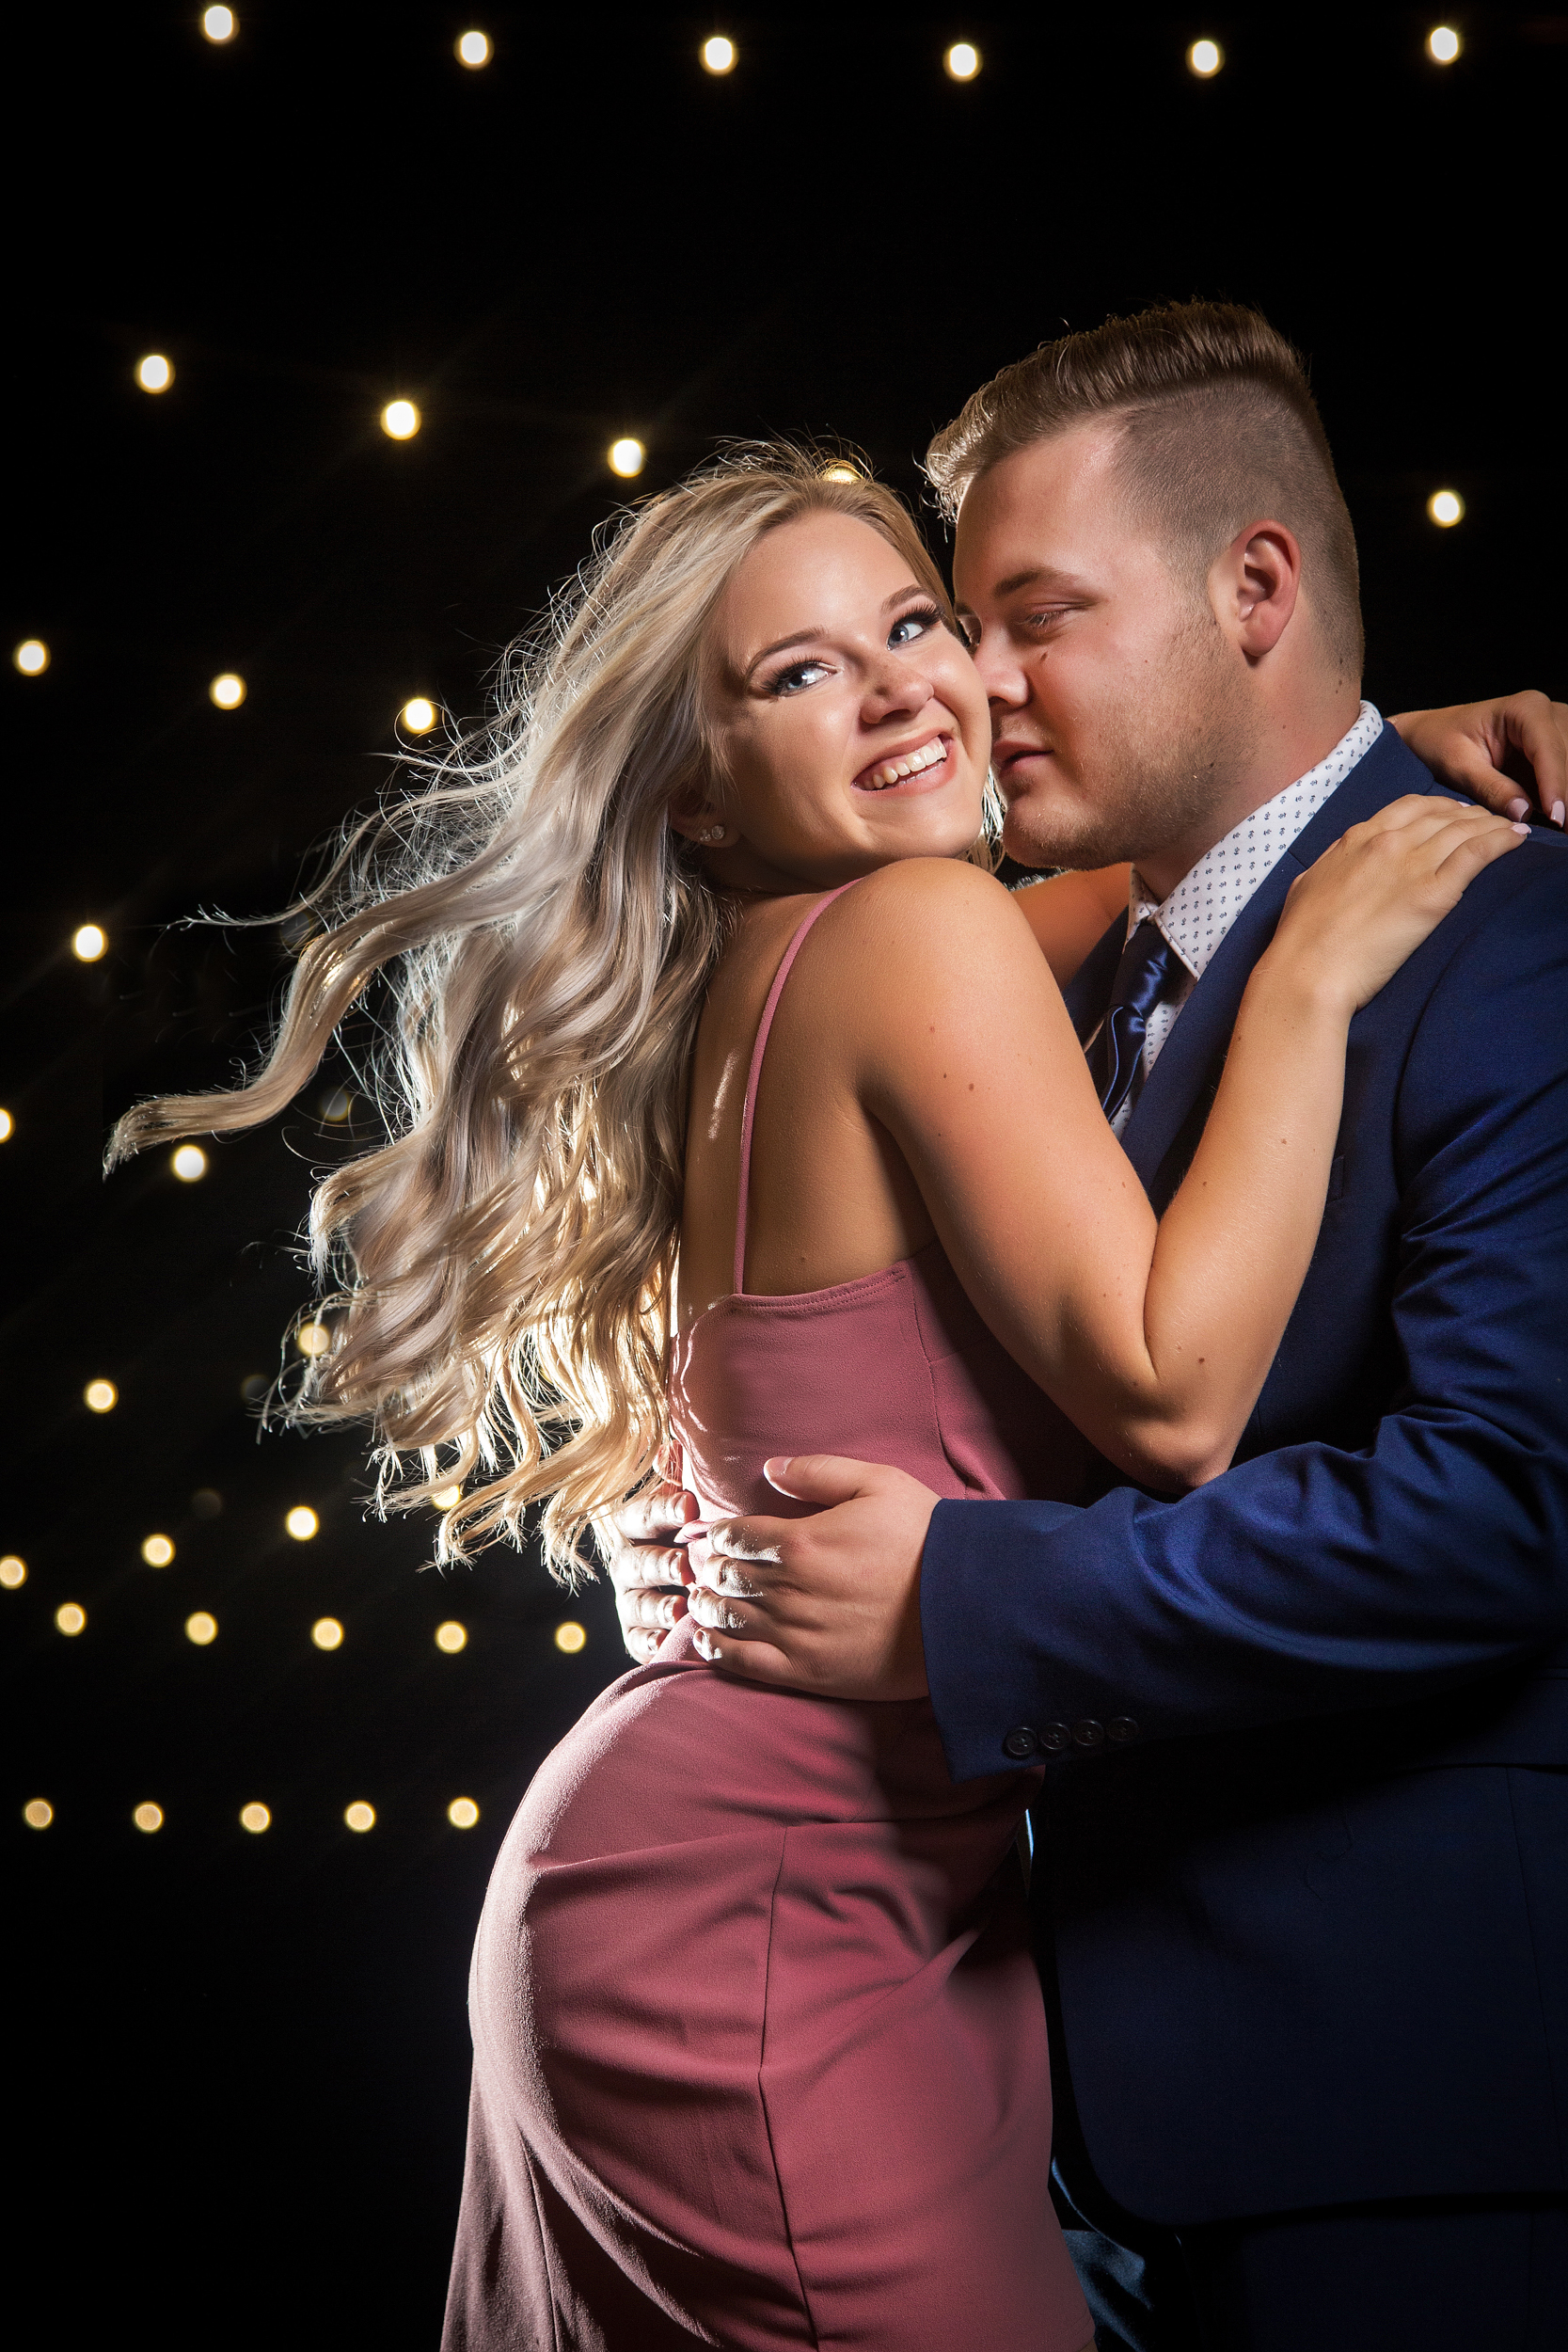 Engagement photo of man and smiling woman with long blonde hair - photo by Amber Henry Photography